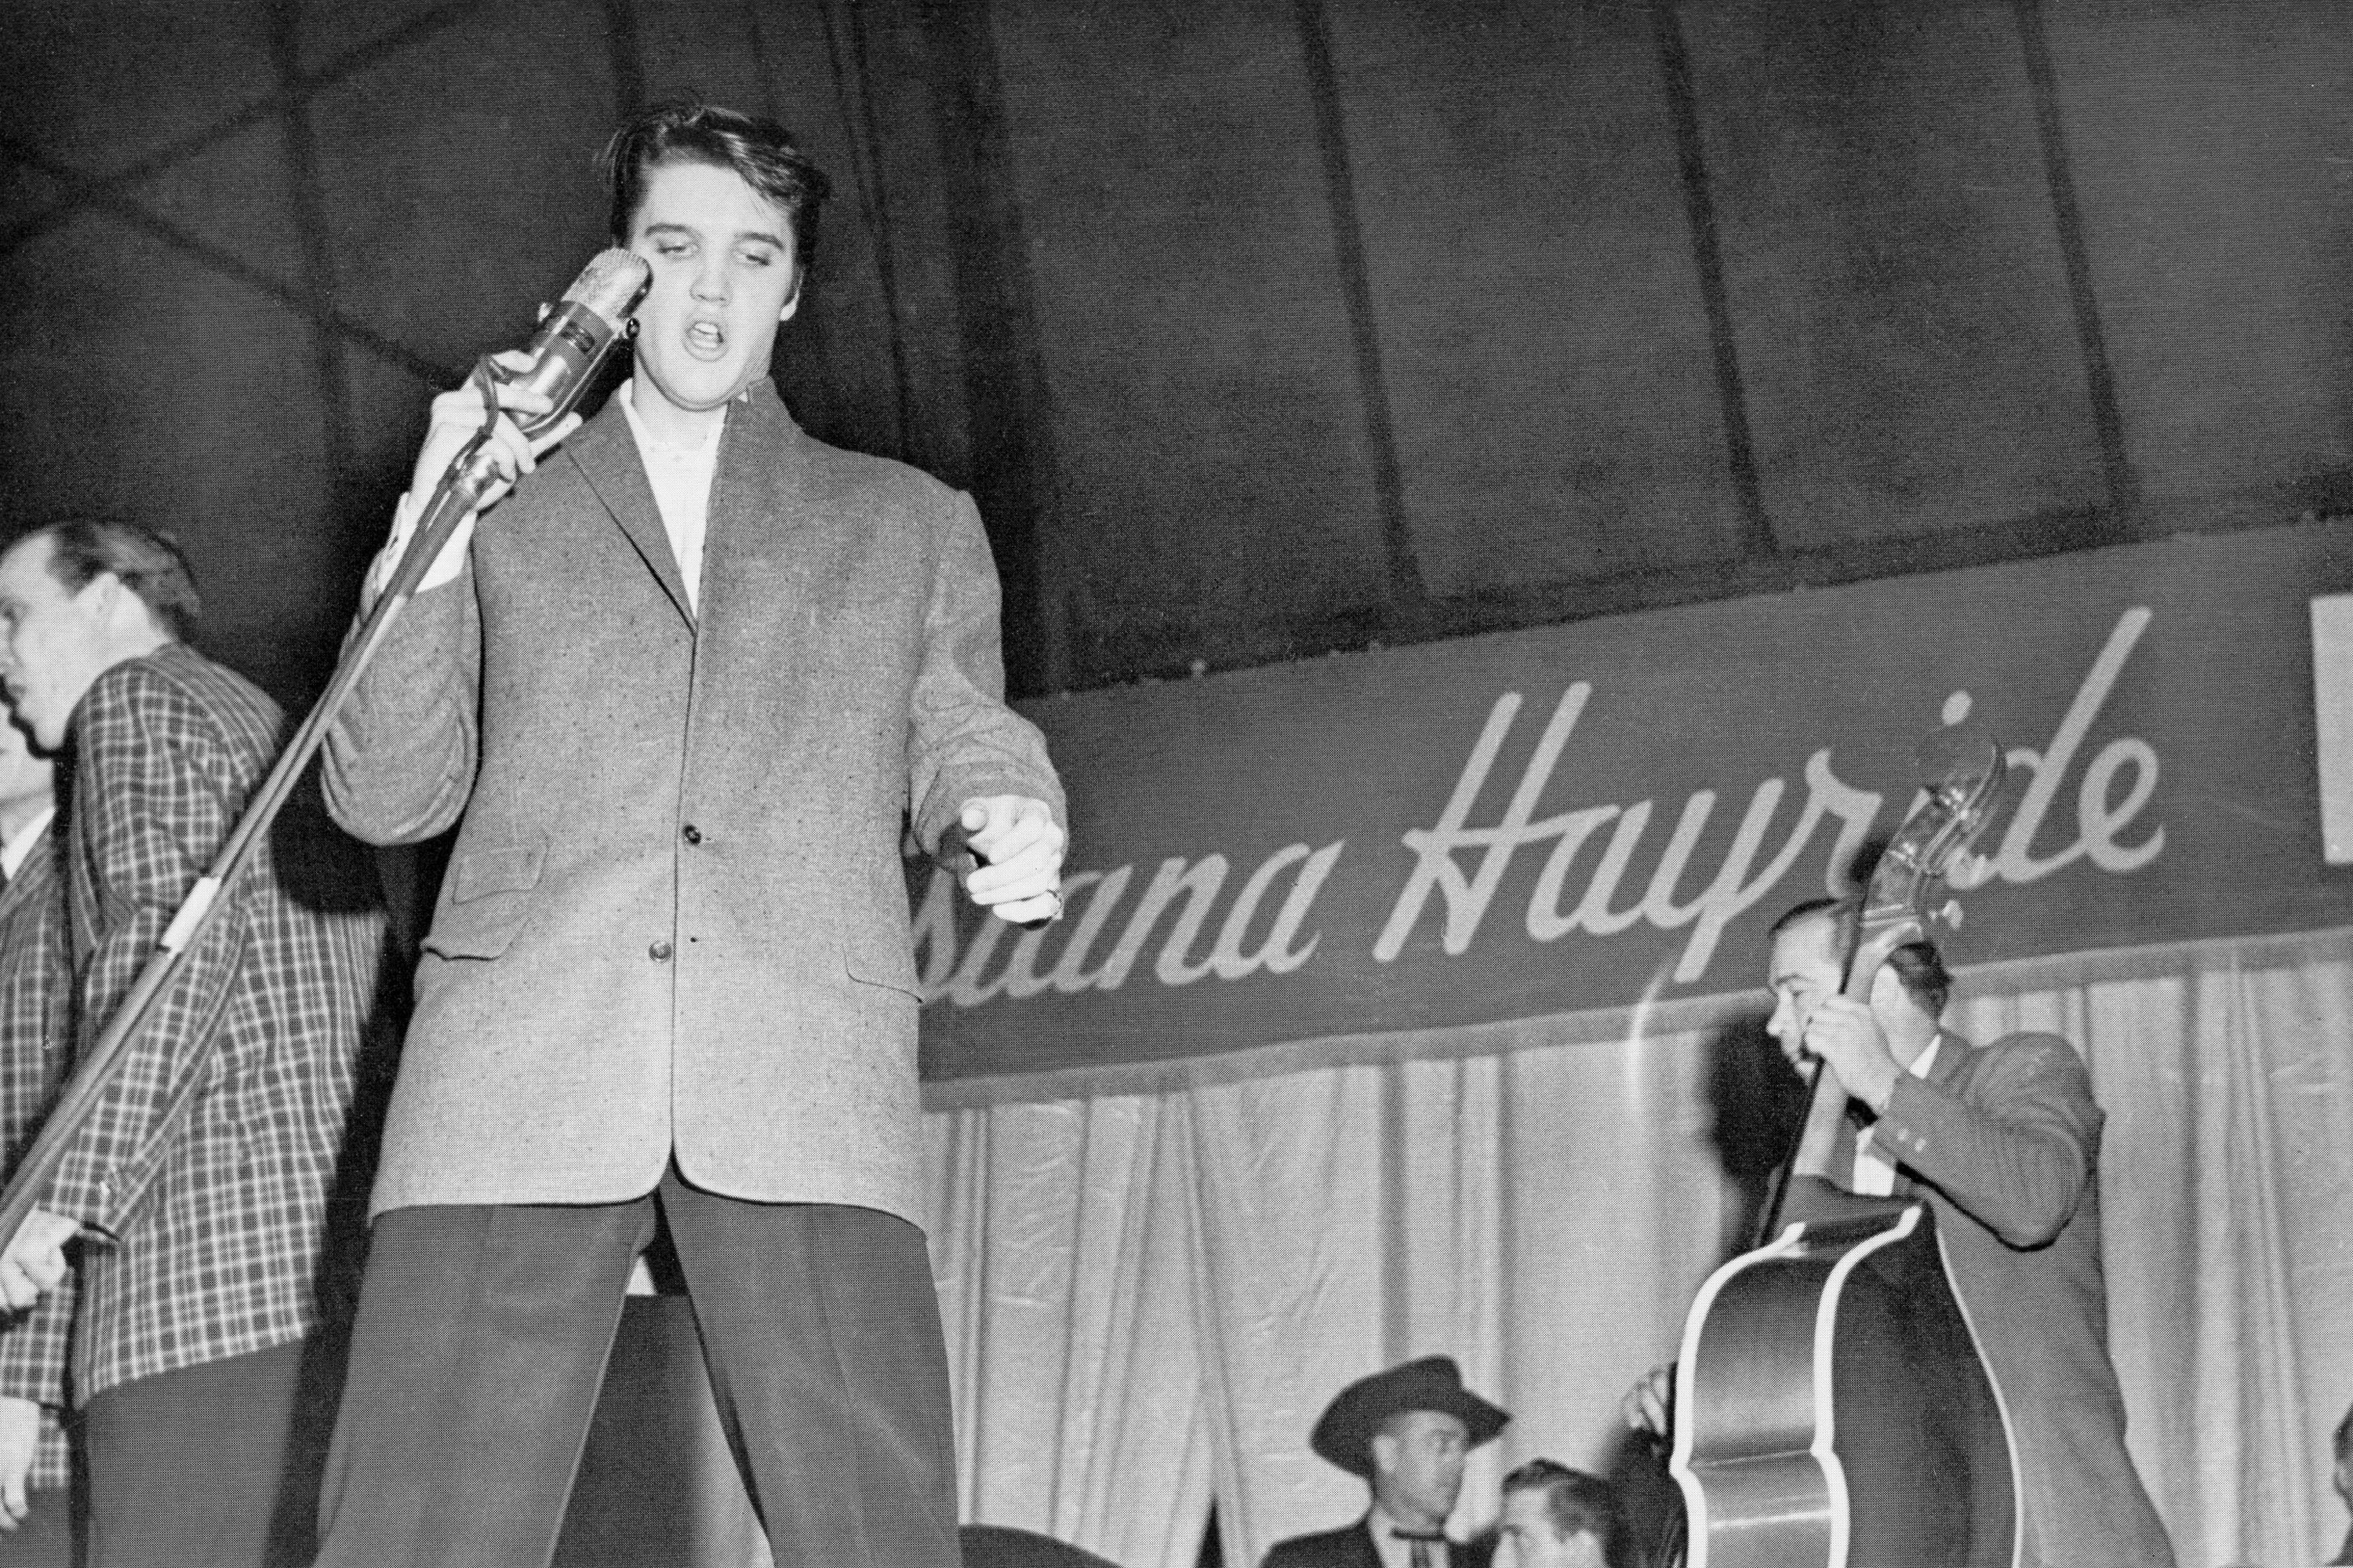 Louisiana Hayride: Inside an Eclectic New Box Set - Rolling Stone